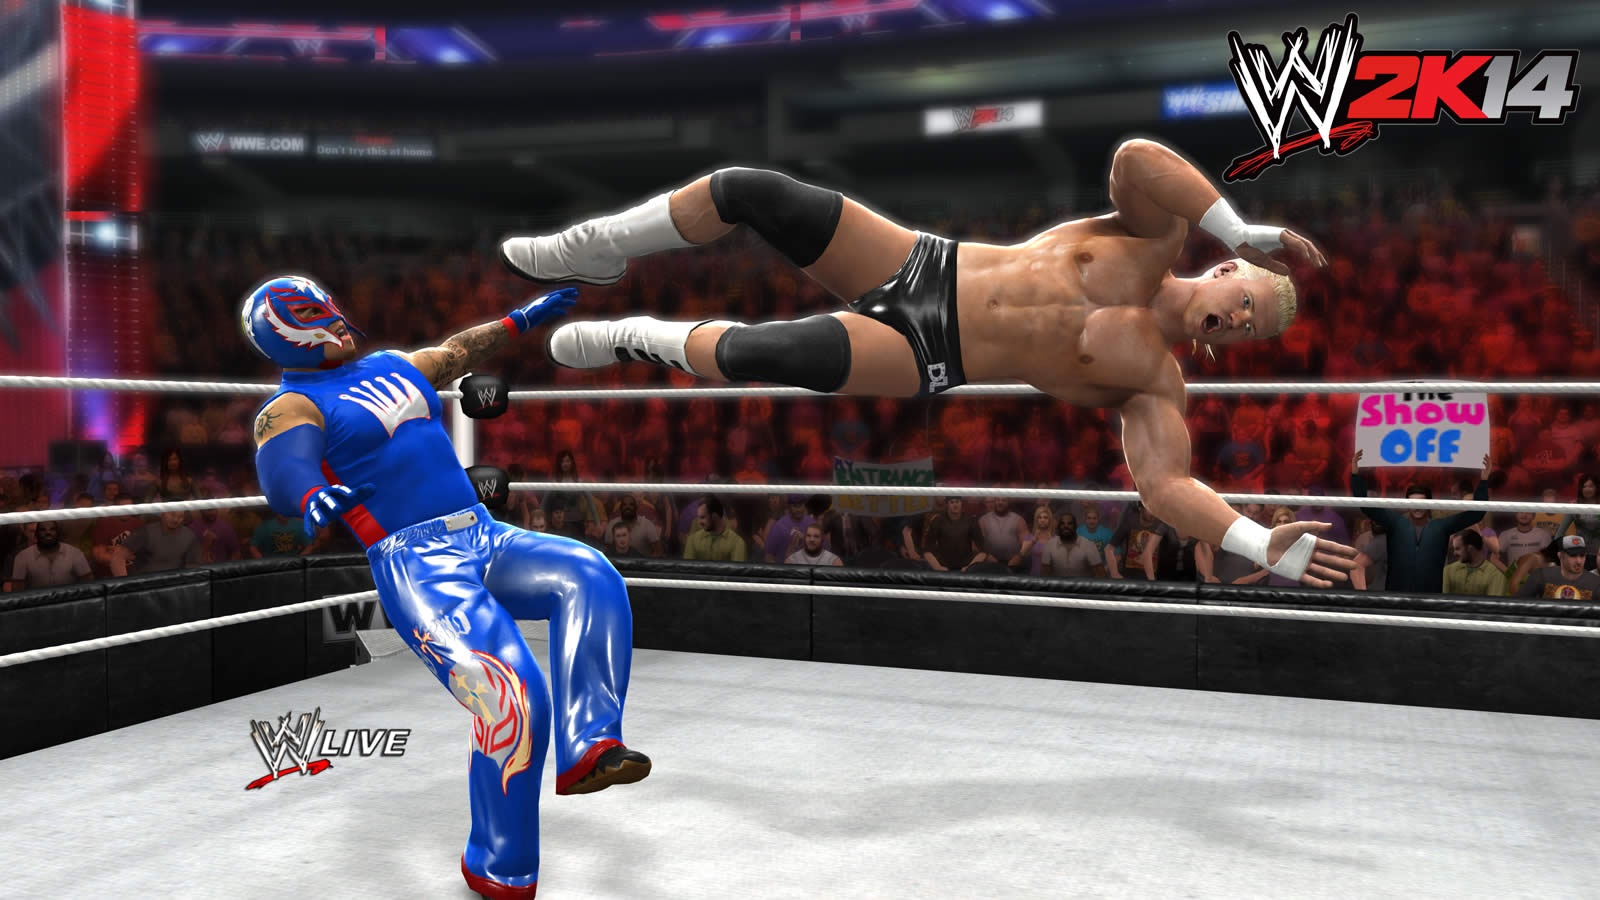 http://downloads.2kgames.com/wwe/site/img/dolph_08202013.jpg